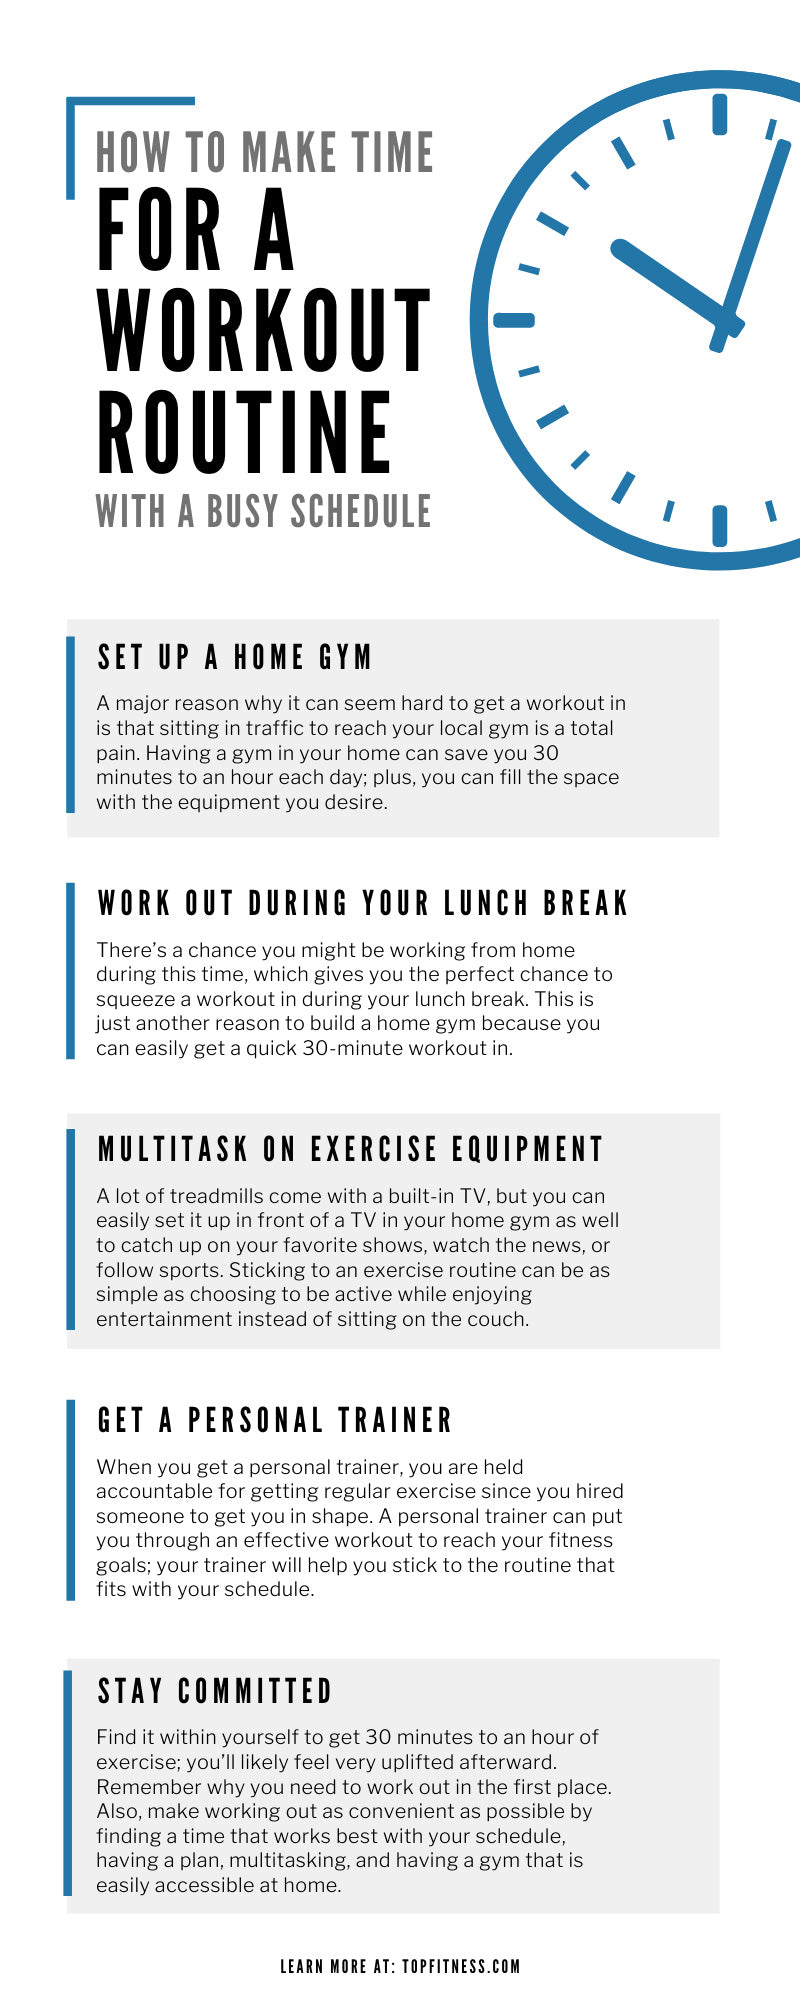 How to Make Time for a Workout Routine With a Busy Schedule